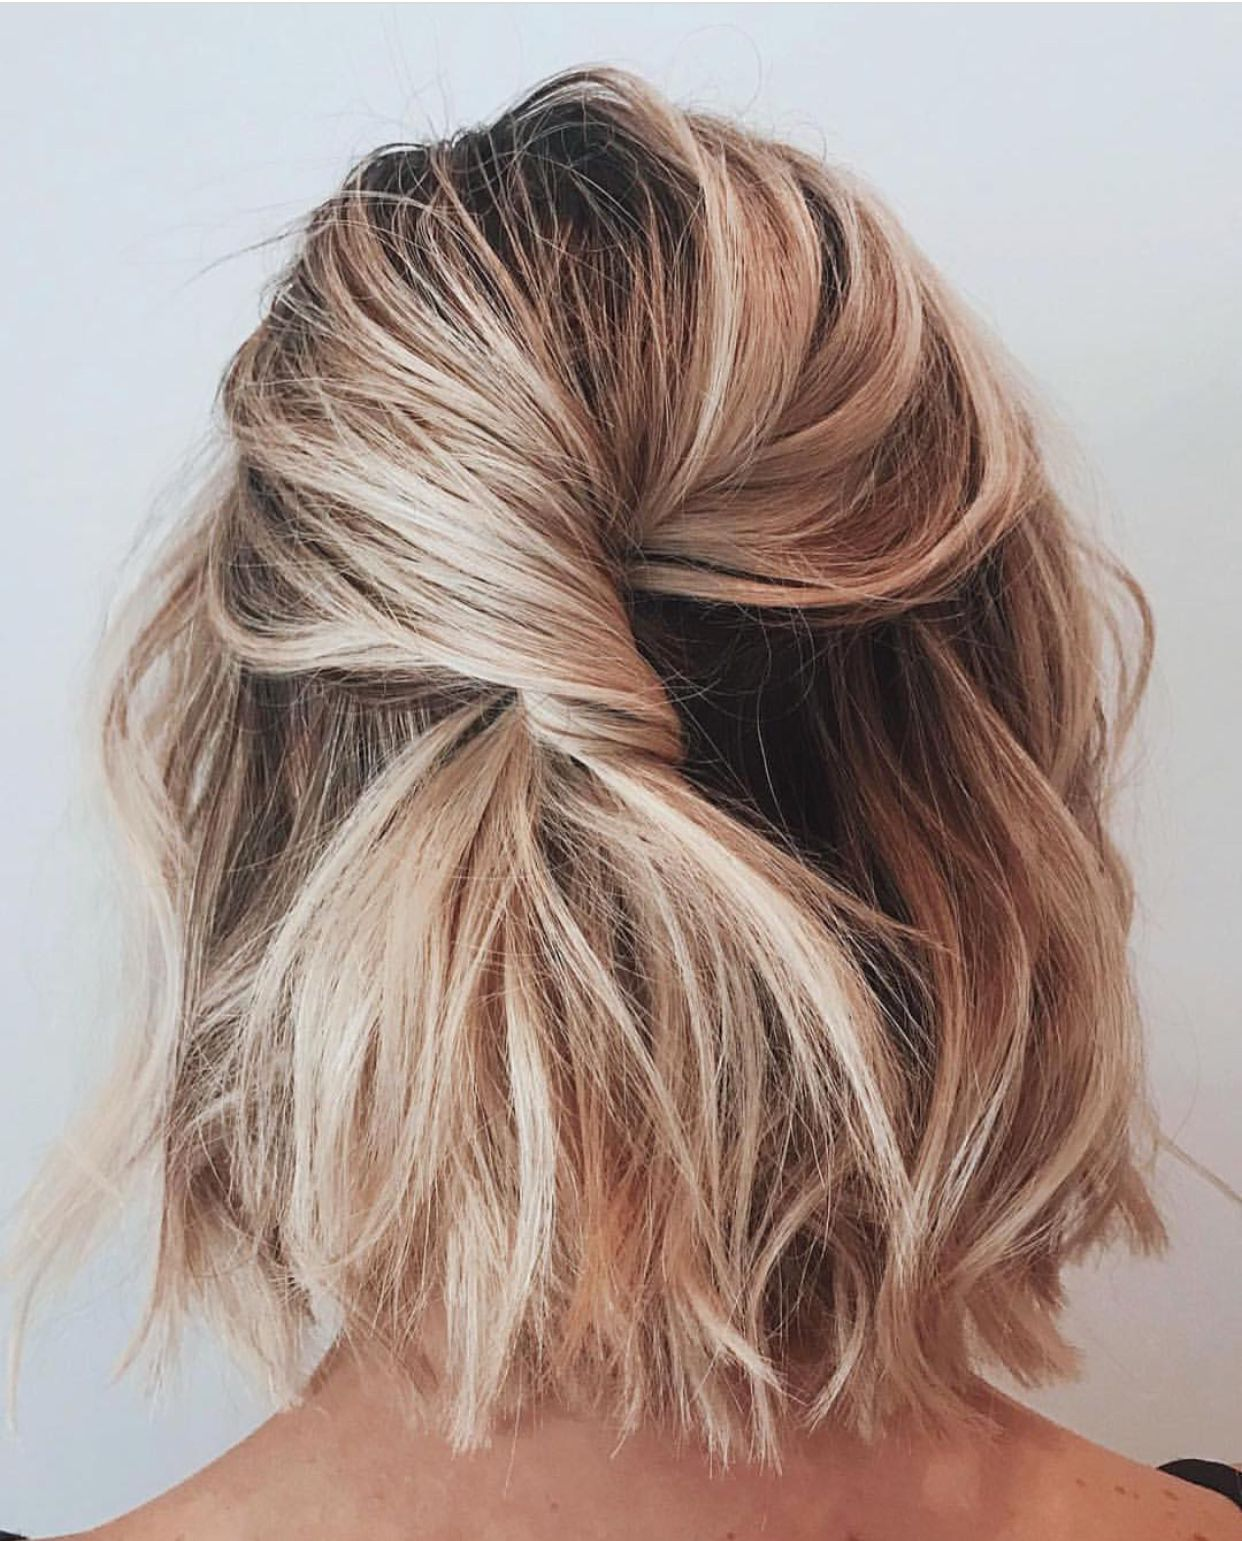 This Twisted Mid Length Style Is The Ideal Way To Hide A Bad Hair Day A Few Kirby Grips And Ta D Cute Hairstyles For Short Hair Hair Styles Thick Hair